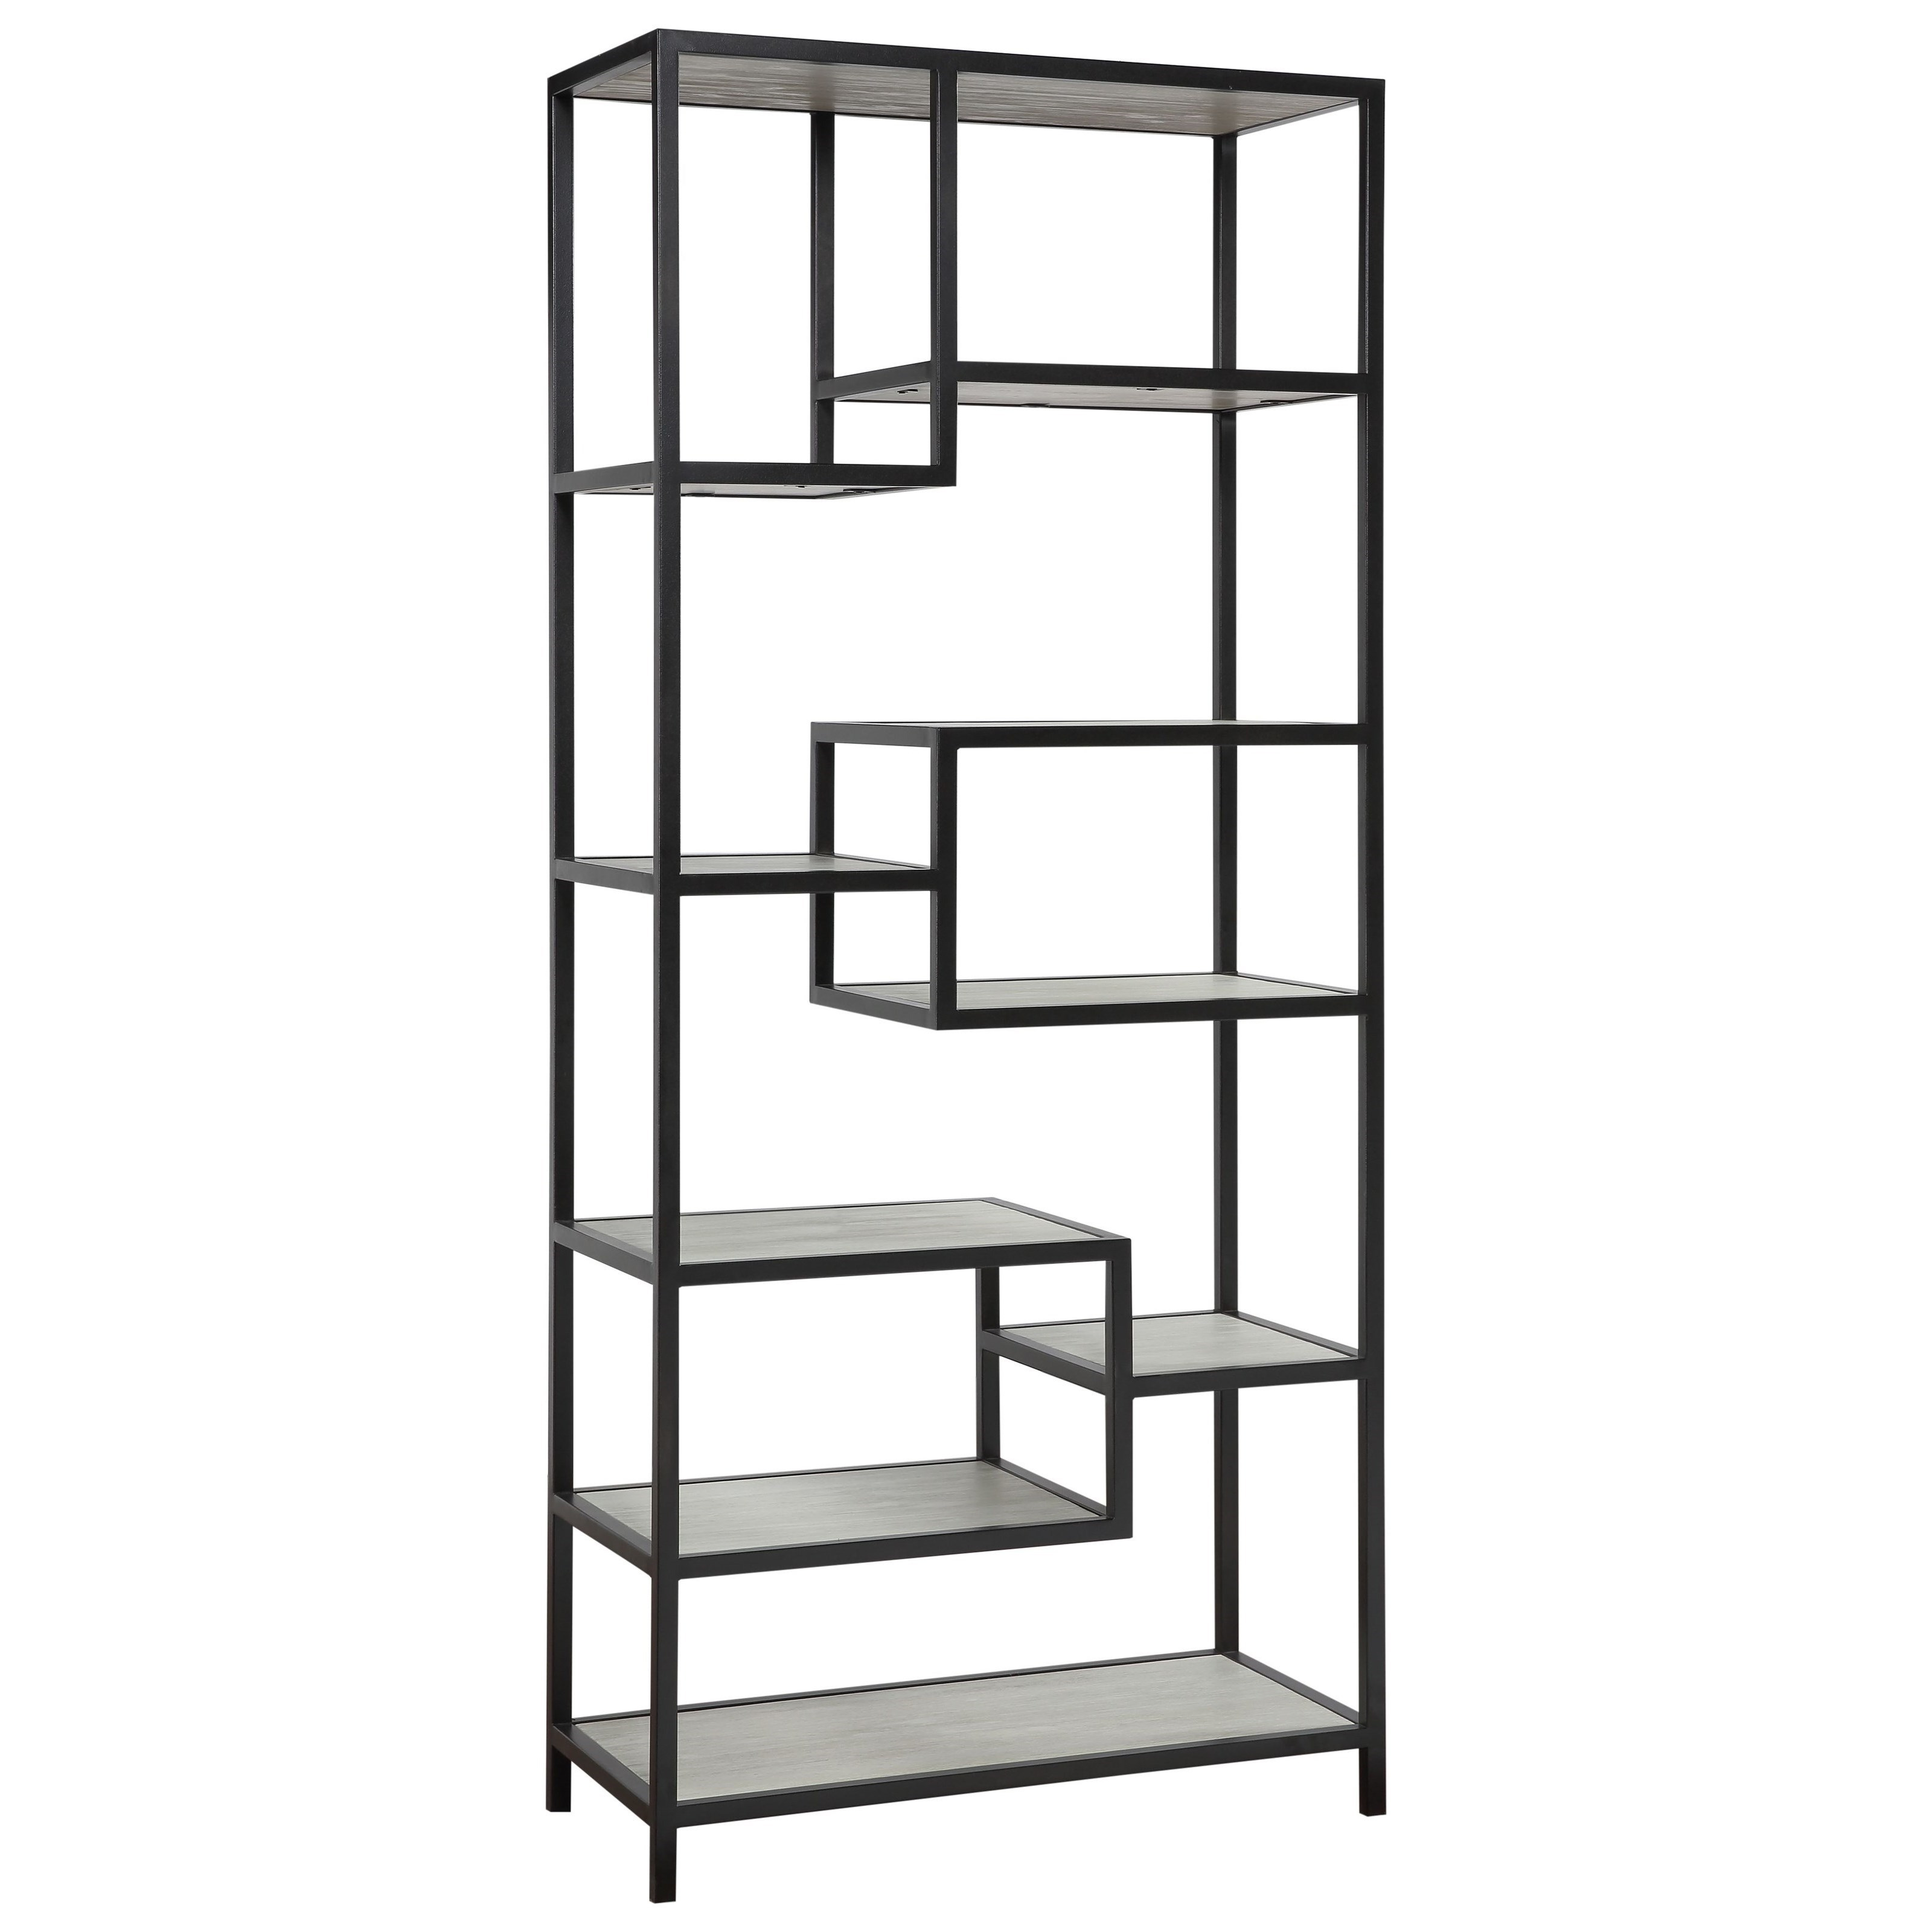 Aspen Court II Etagere by Coast to Coast Imports at Baer's Furniture